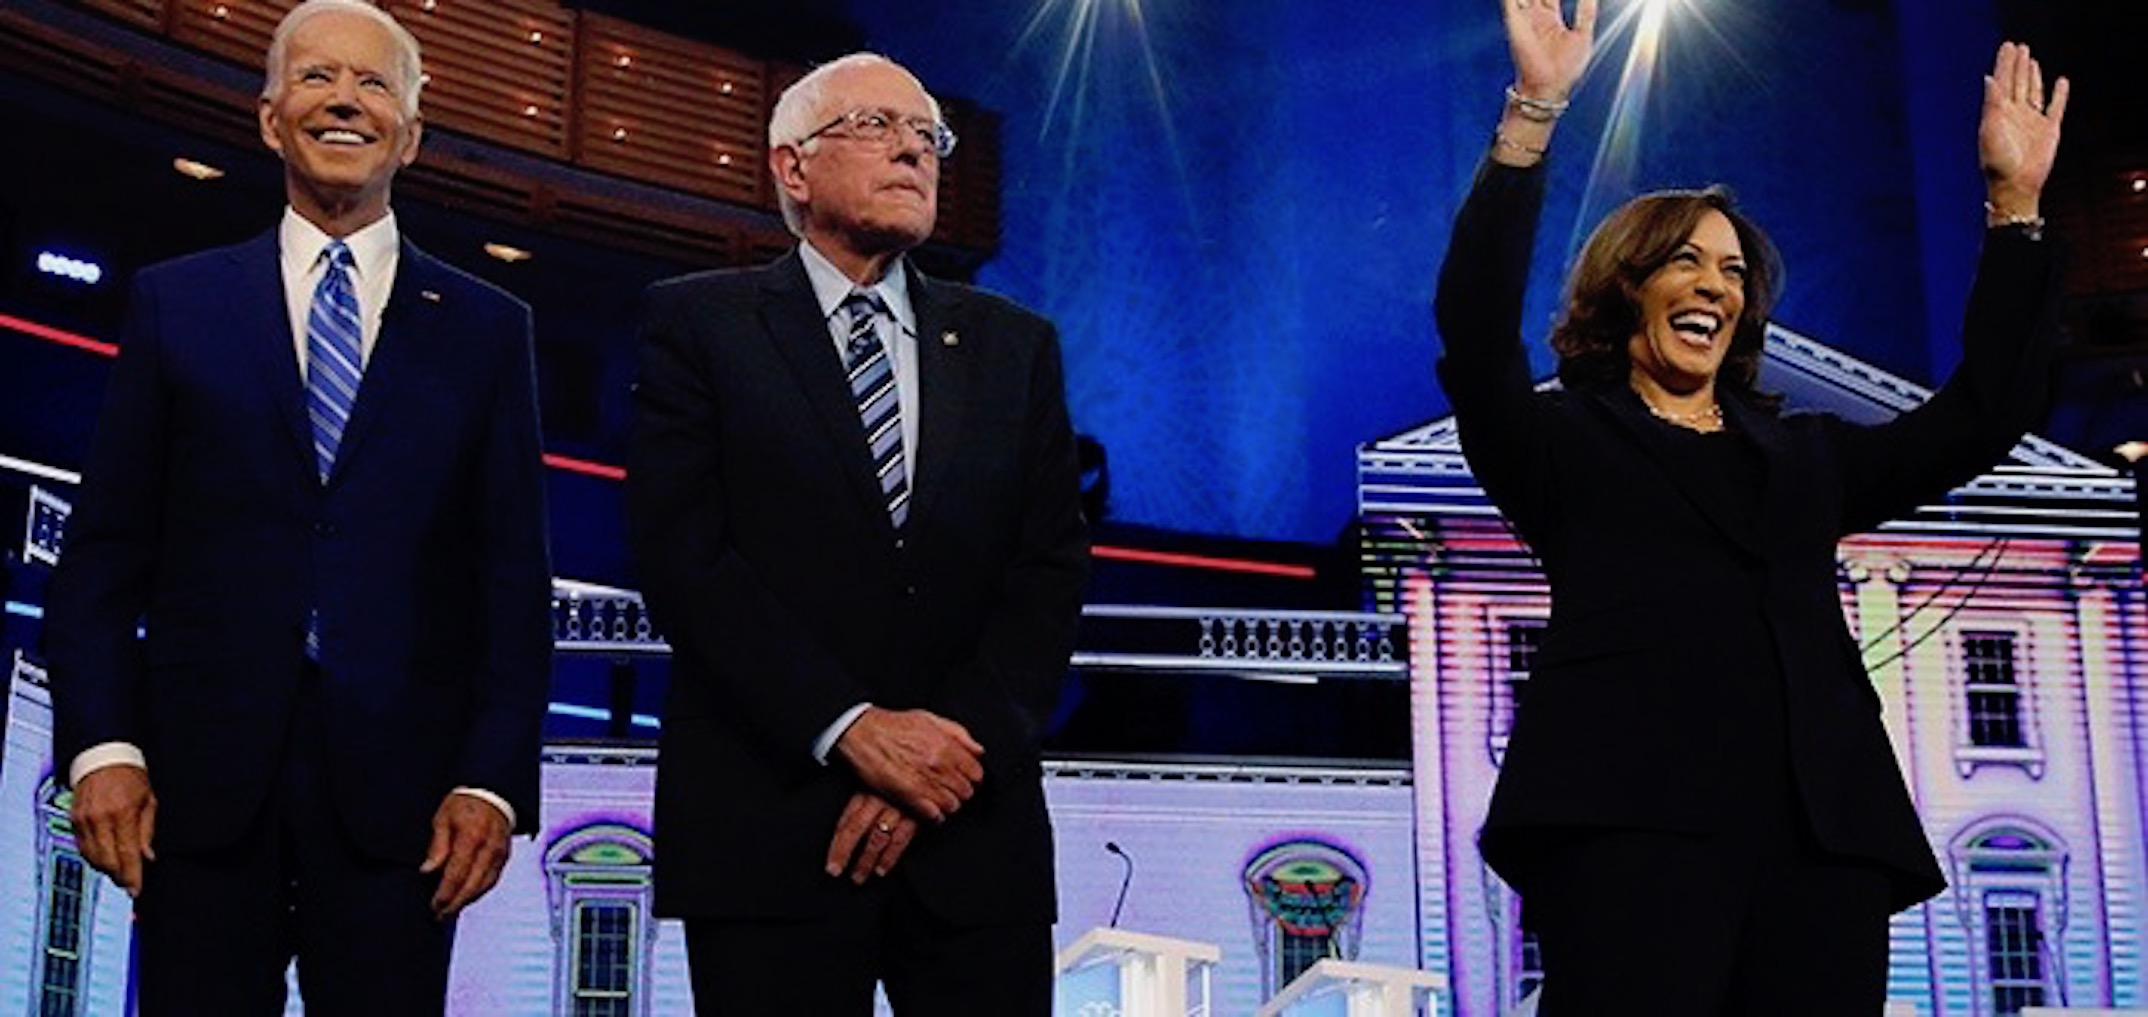 Sanders, Biden and the Electability Scam